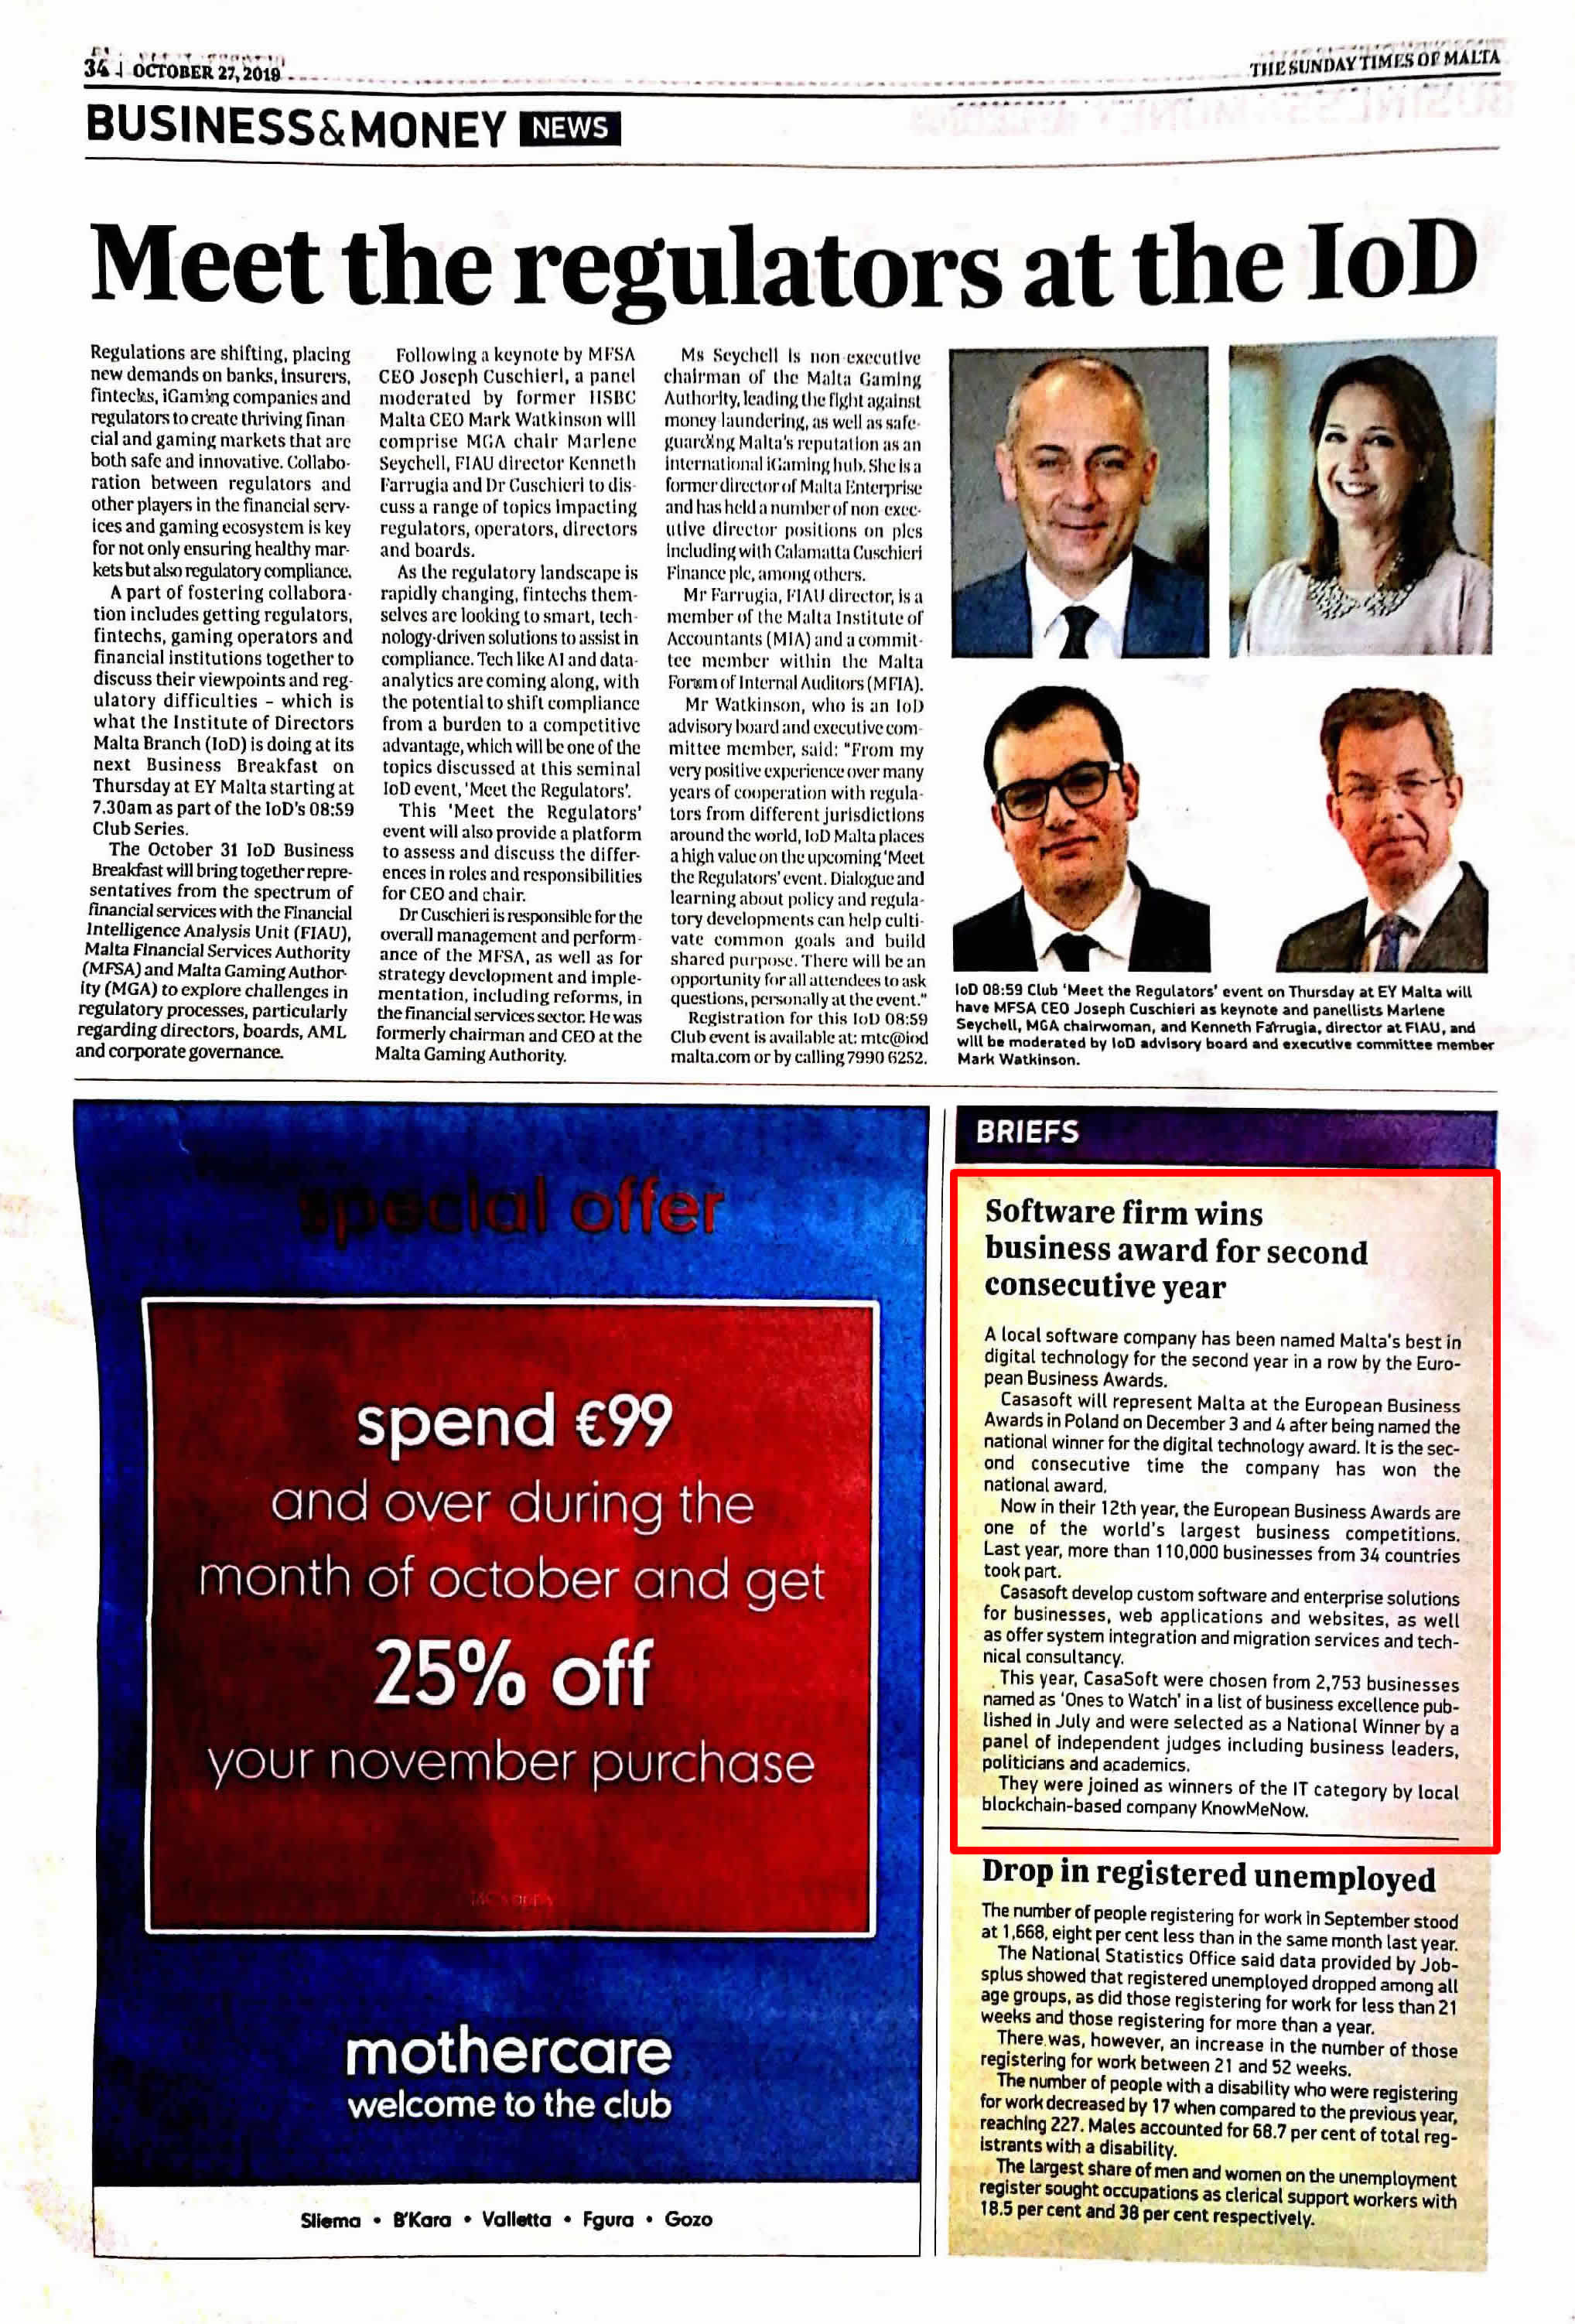 CasaSoft's achievement featured in the Sunday Times of Malta (27 Oct 2019) under the Business & Money section